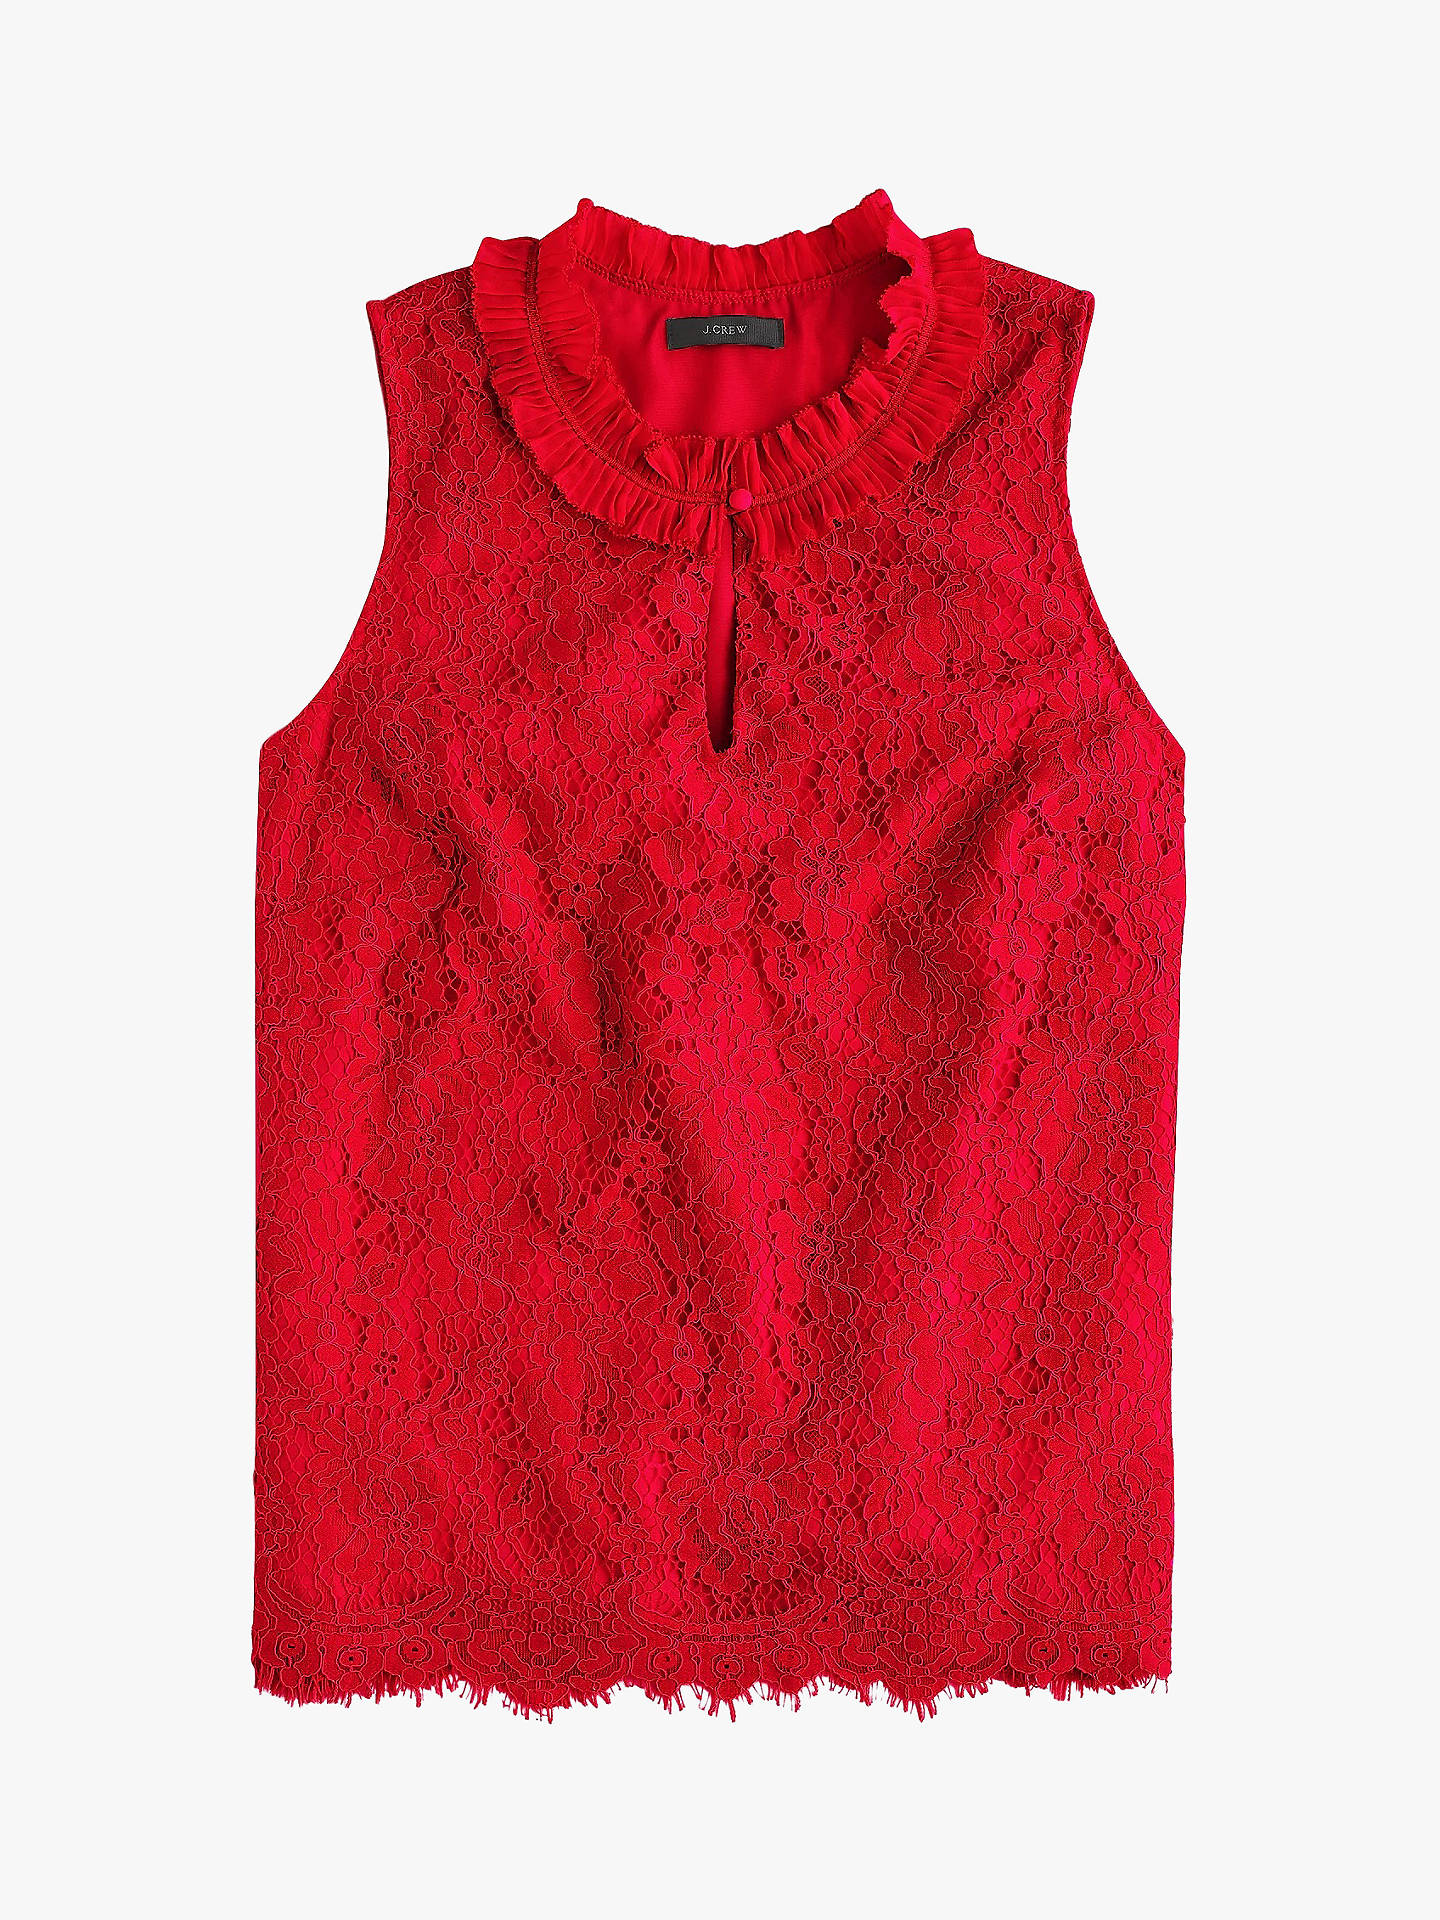 Jcrew Lace Ruffle Neck Top At John Lewis Partners